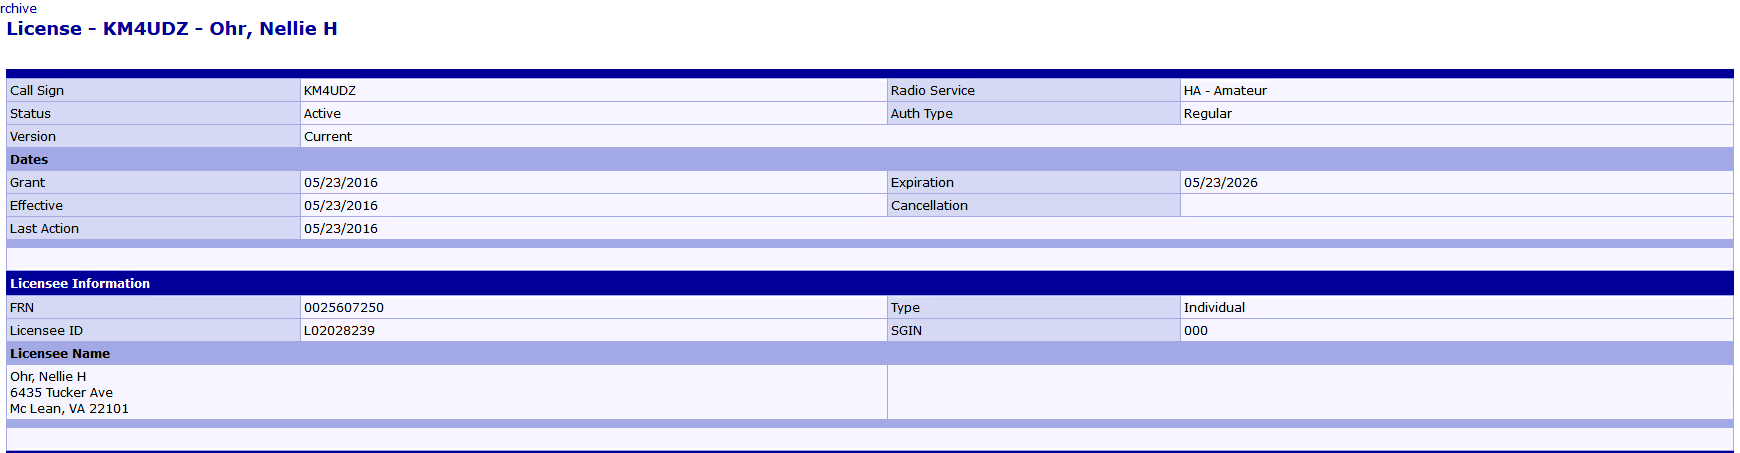 Nellie Ohr's HAM Radio License